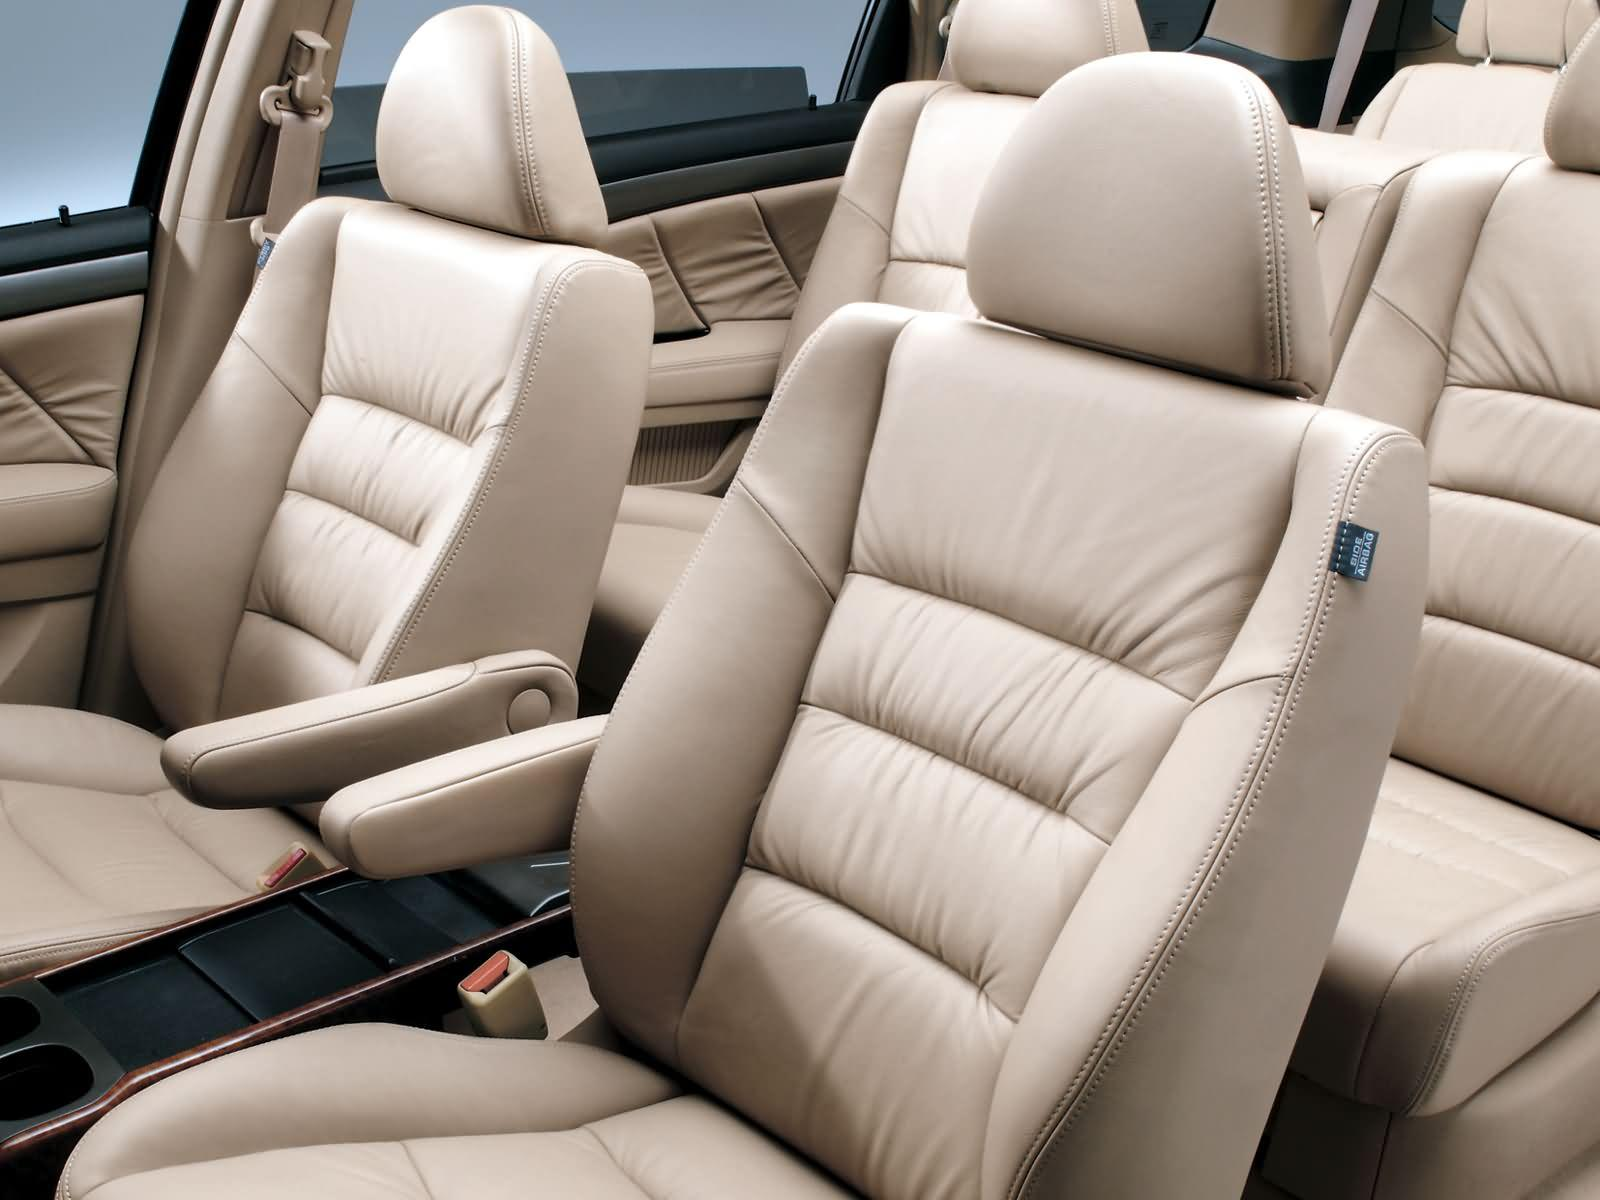 Improve(Increase) Your HOW TO REPAIR LEATHER CAR SEATS In 3 Days